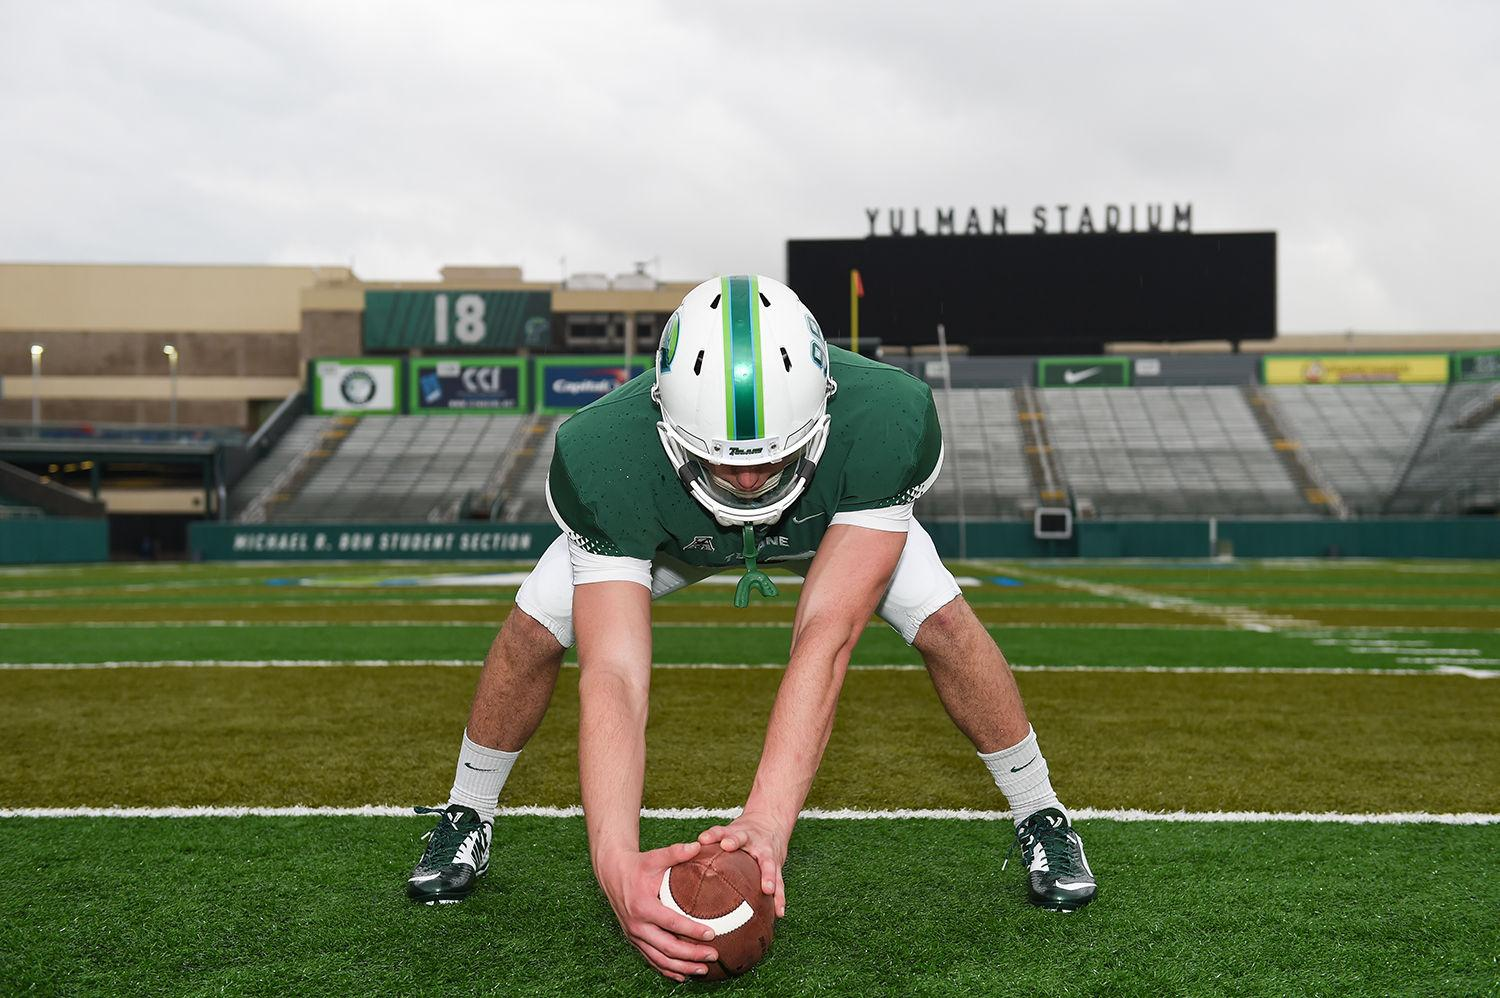 Golub who has no vision in his right eye and limited in his left made history when he took the field in a 45-31 win over Central Florida on Oct. 3 as the first legally blind athlete to play for a Football Bowl Subdivision program in an NCAA game.